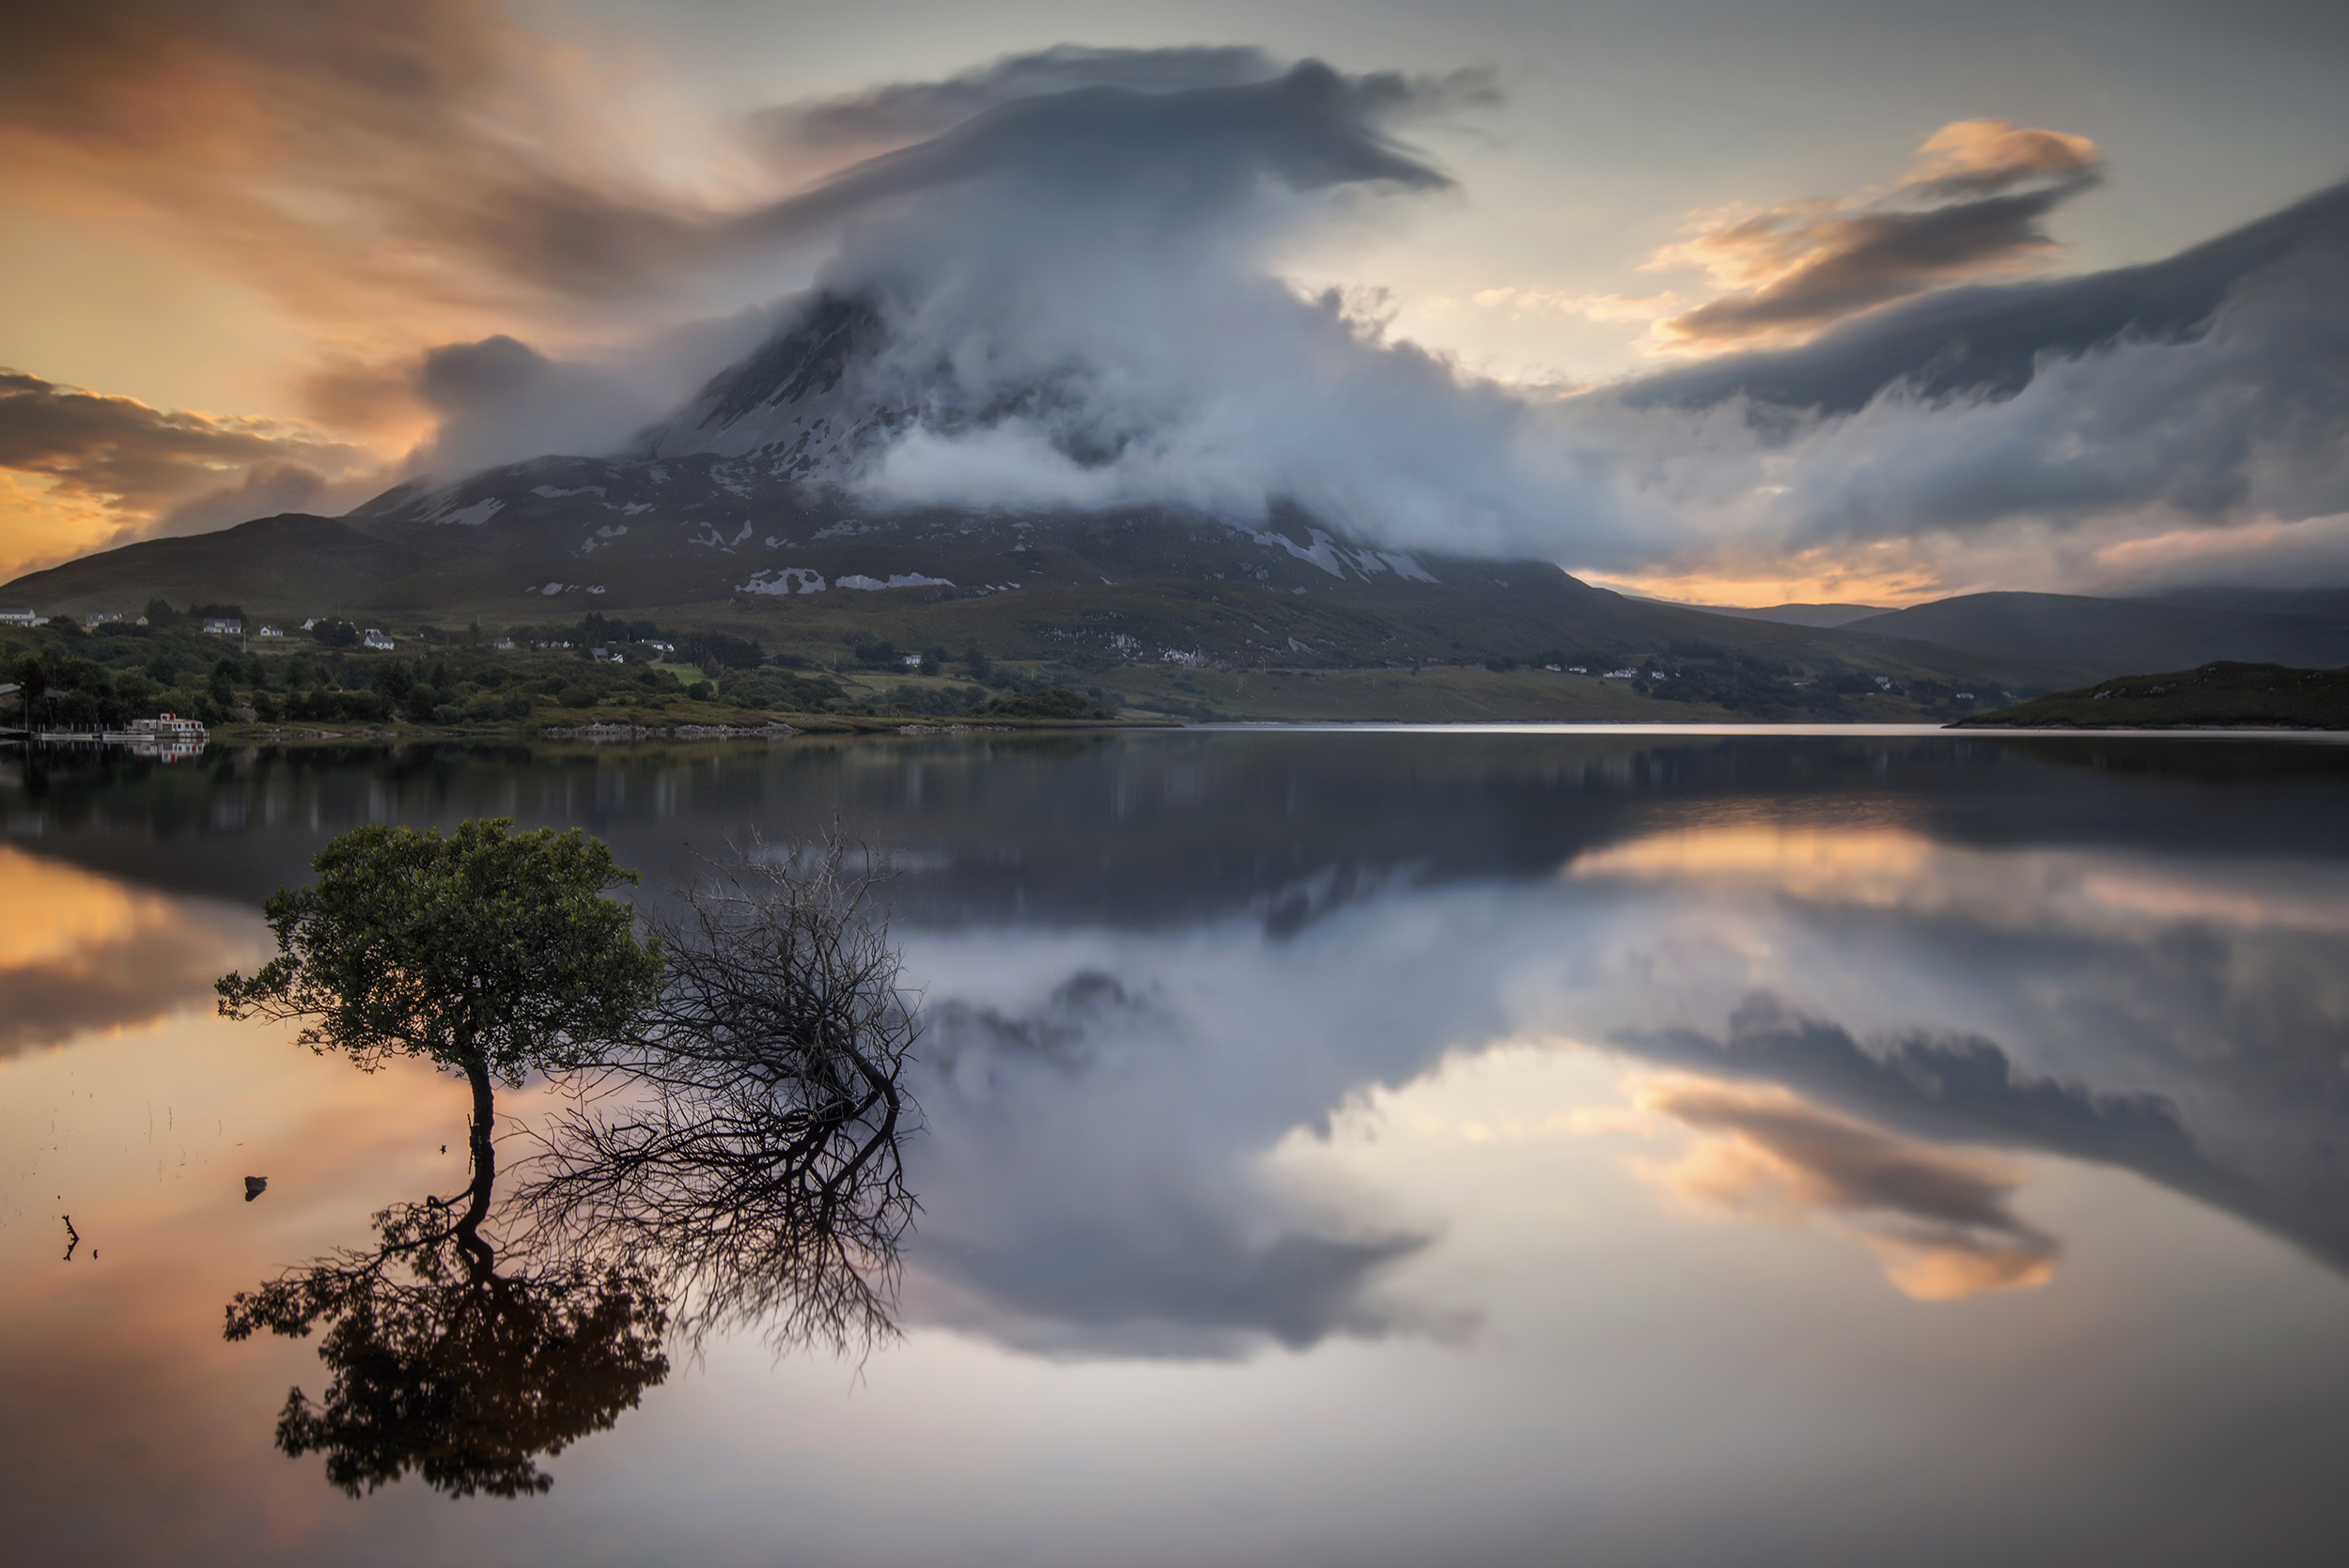 Smoky Mountain, Mount Errigal, Donegal